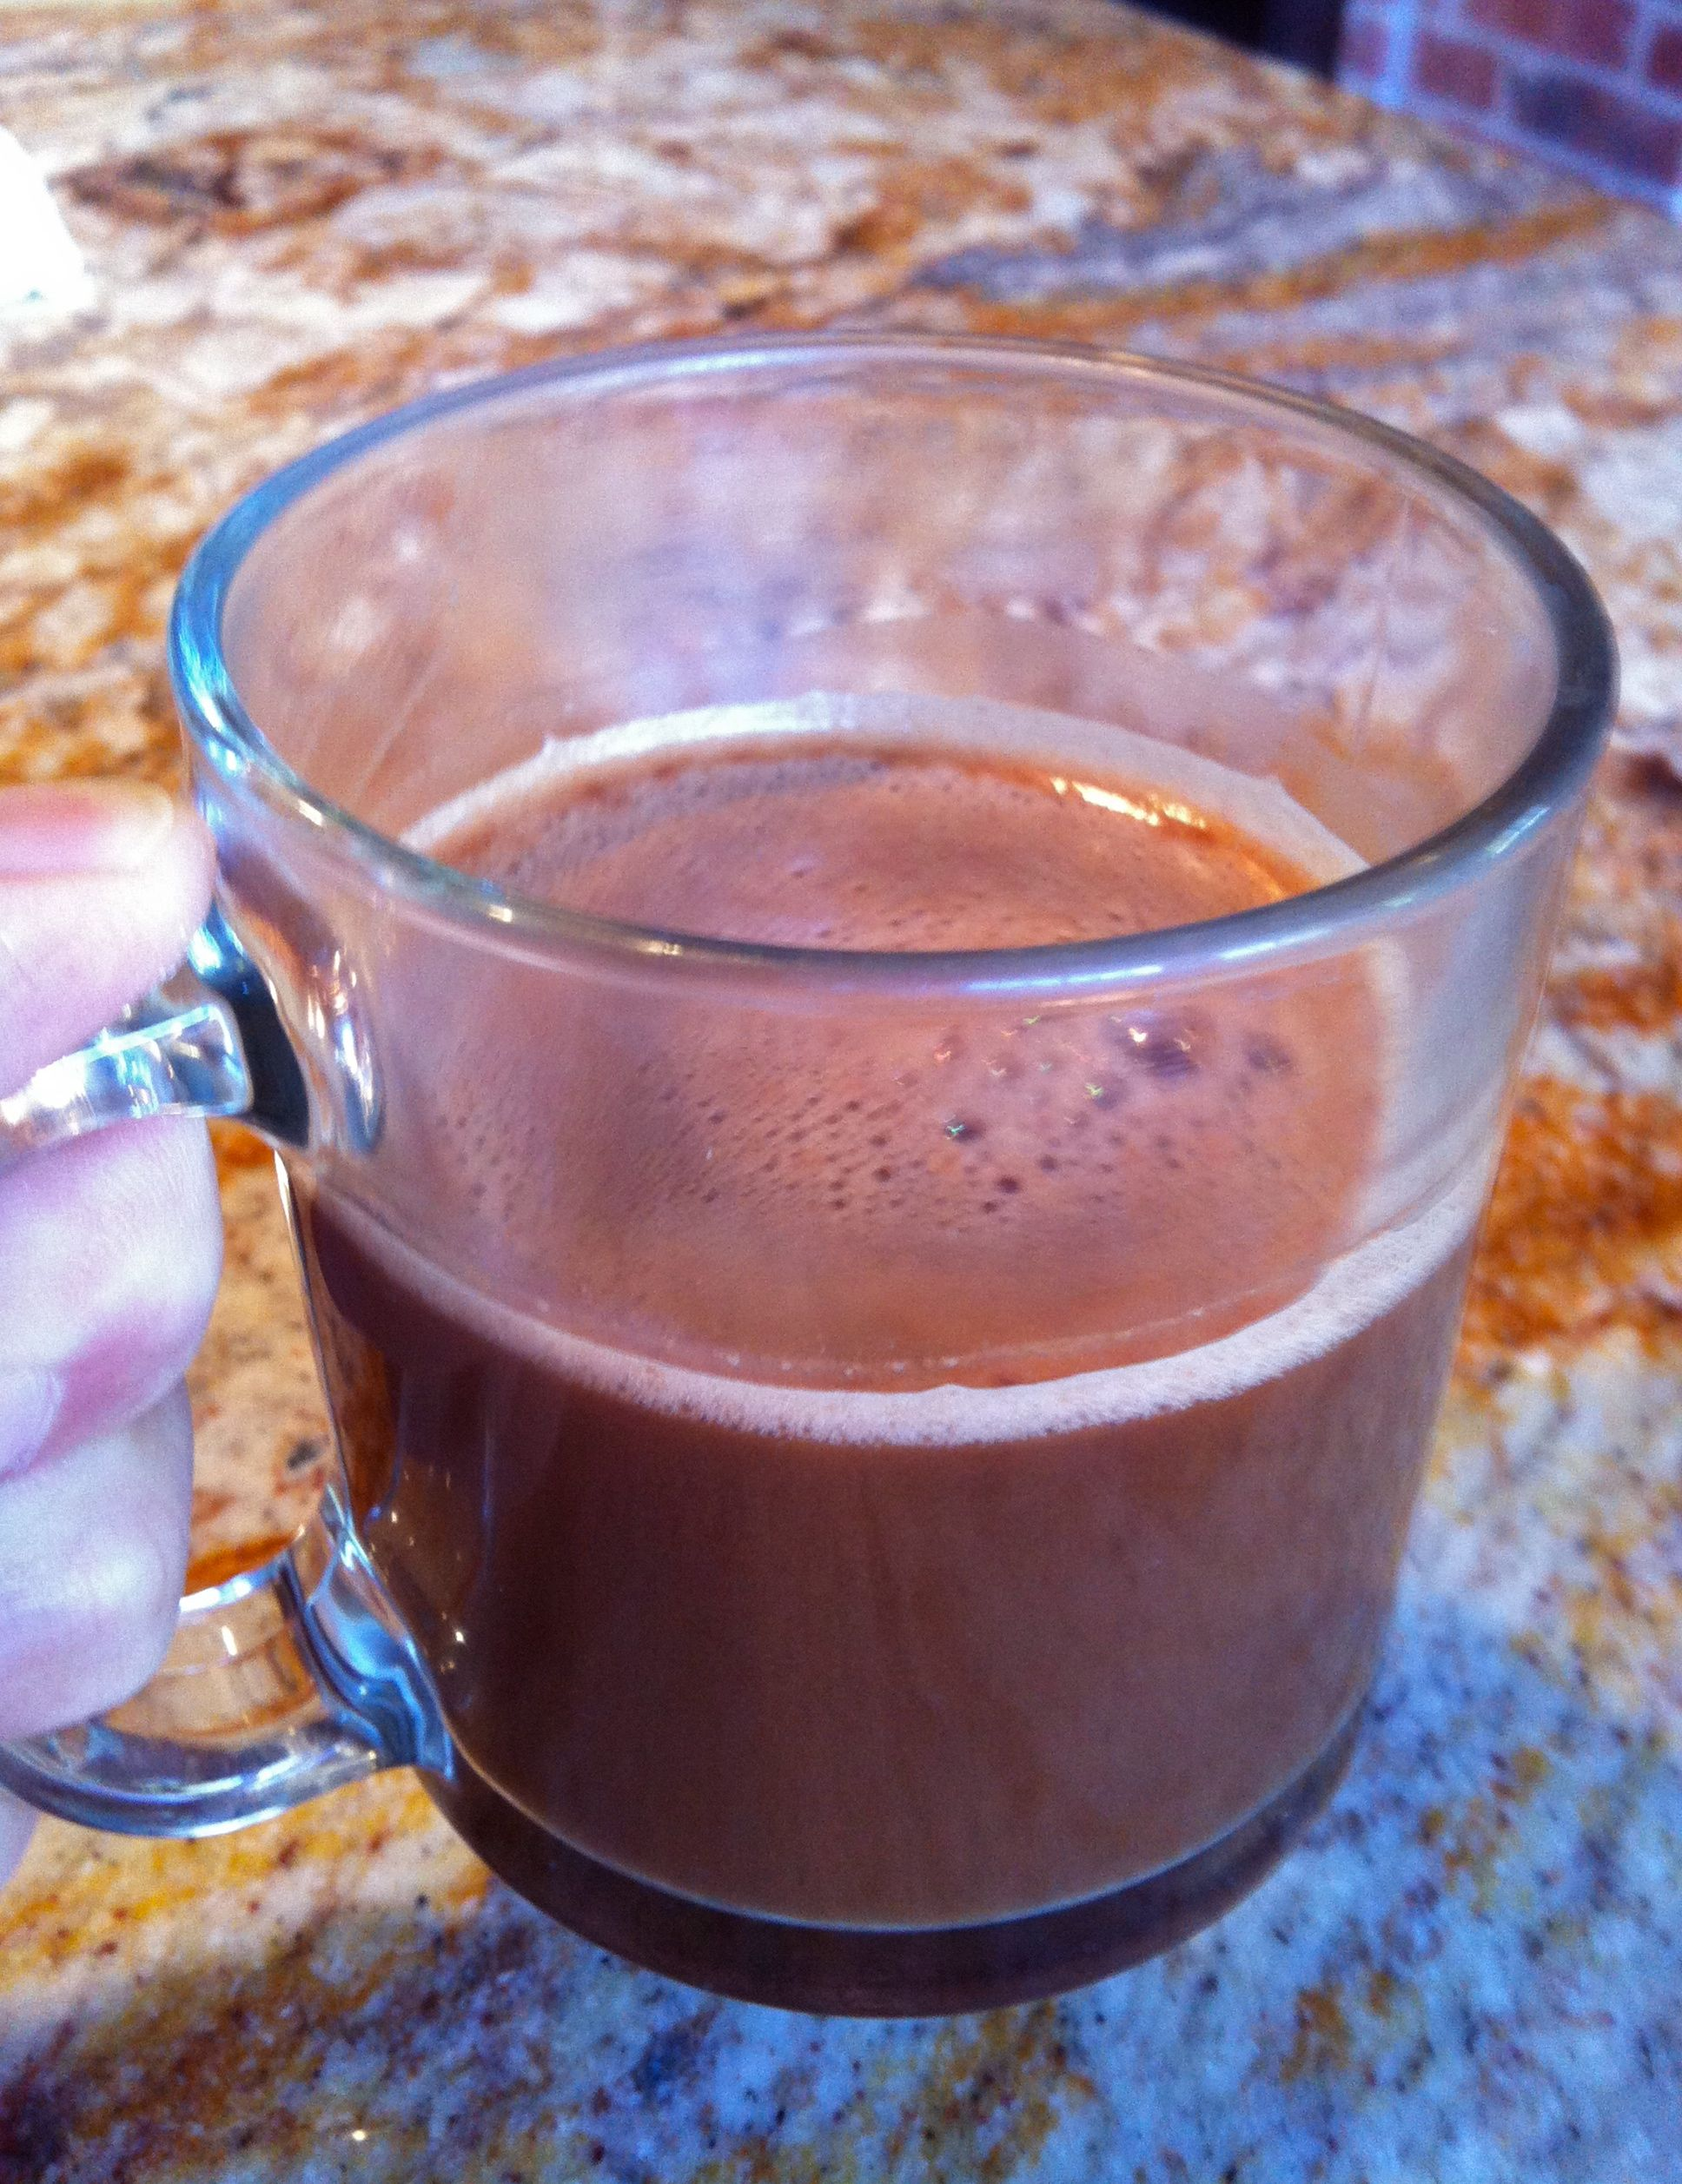 The Original Chocolate Drink:  Why You Should Skip The Milk